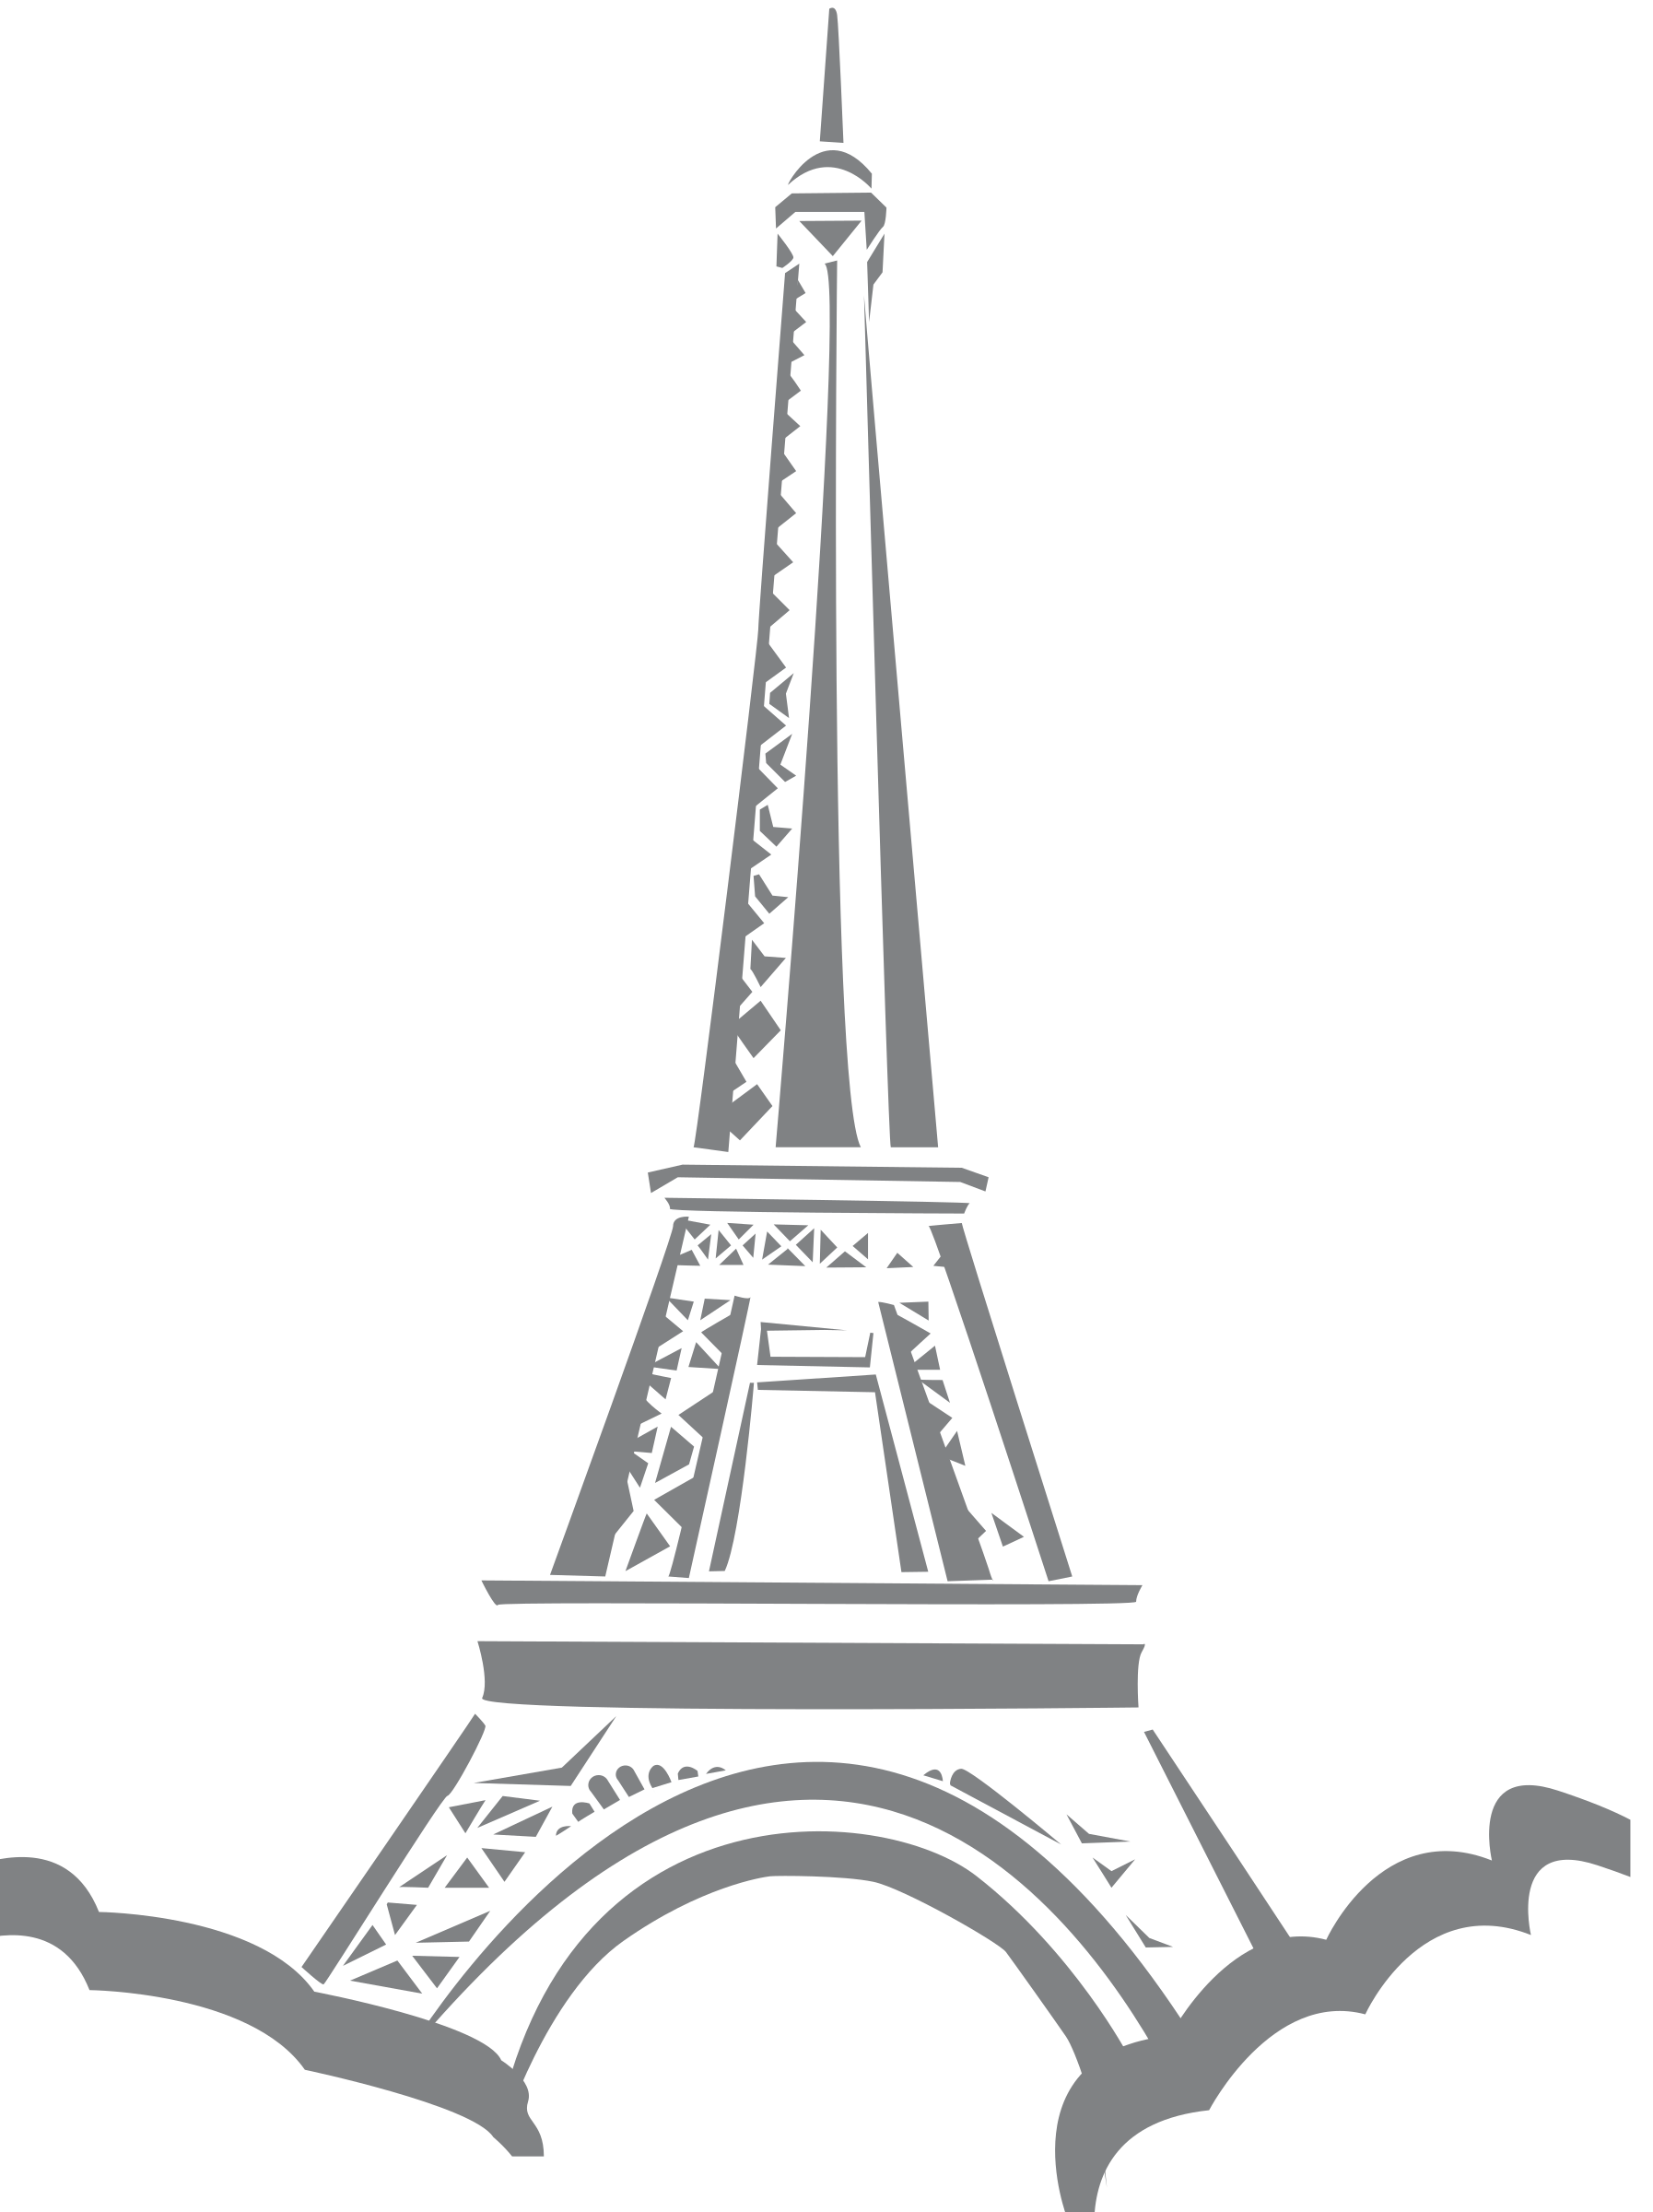 Eiffel tower with crown clipart banner transparent 28+ Collection of Eiffel Tower Clipart Png   High quality, free ... banner transparent